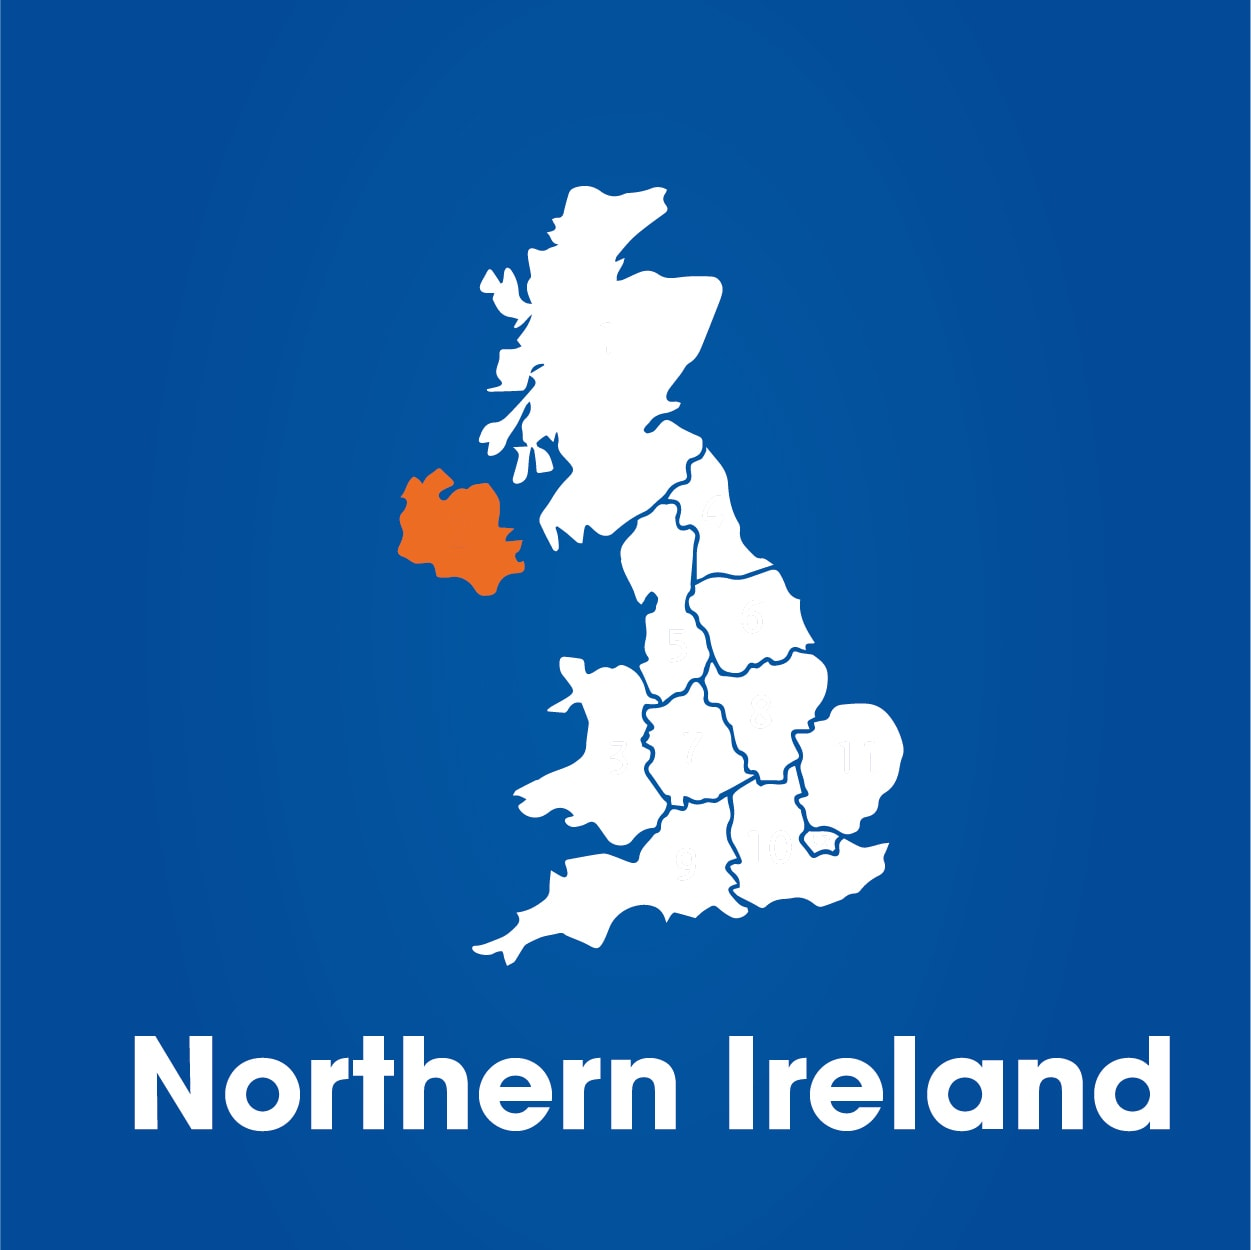 Northern Ireland highlighted on map of UK